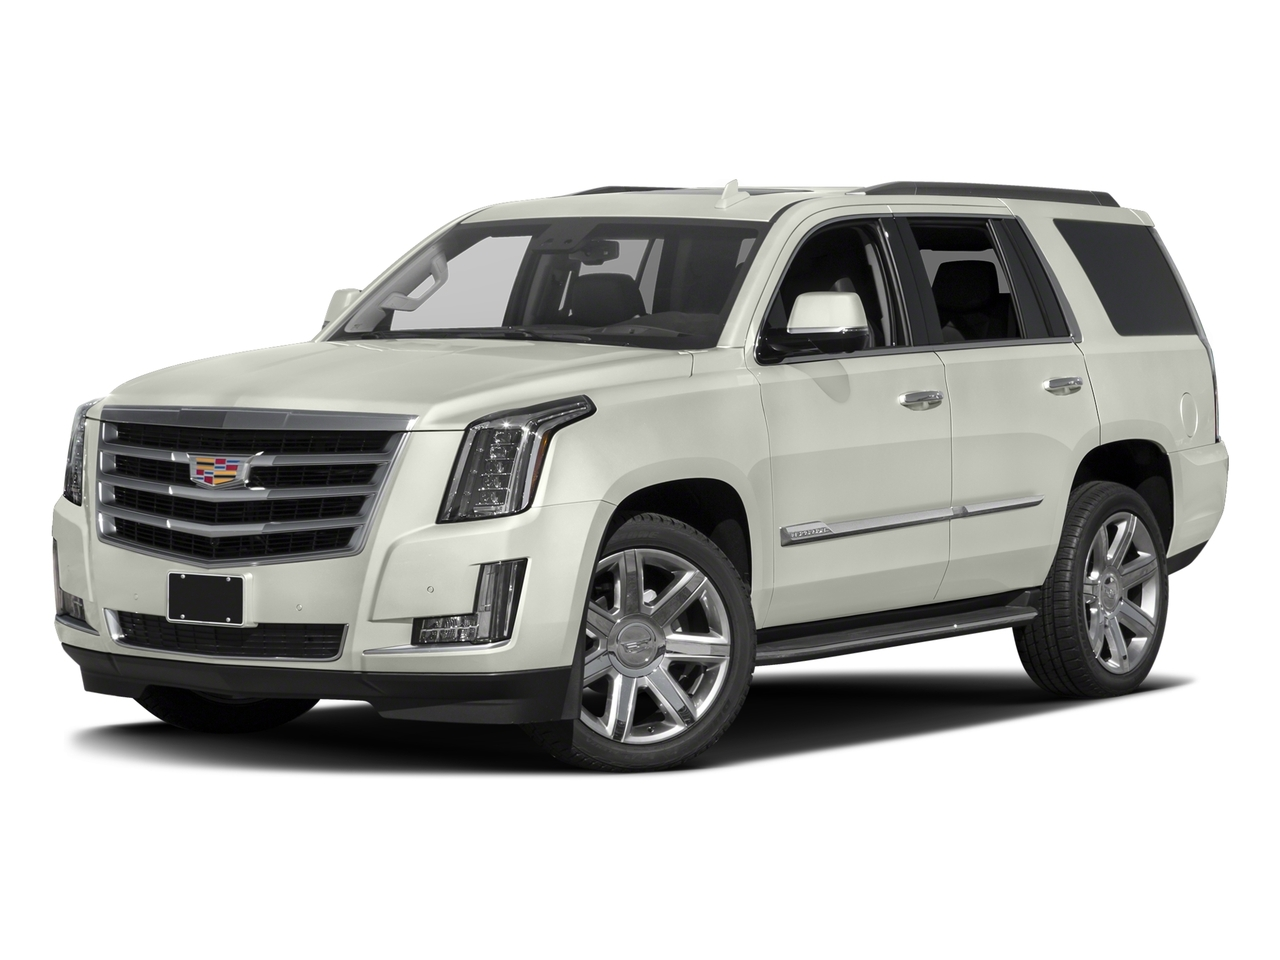 2017 Cadillac Escalade 4WD 4DR LUXURY SUV Slide